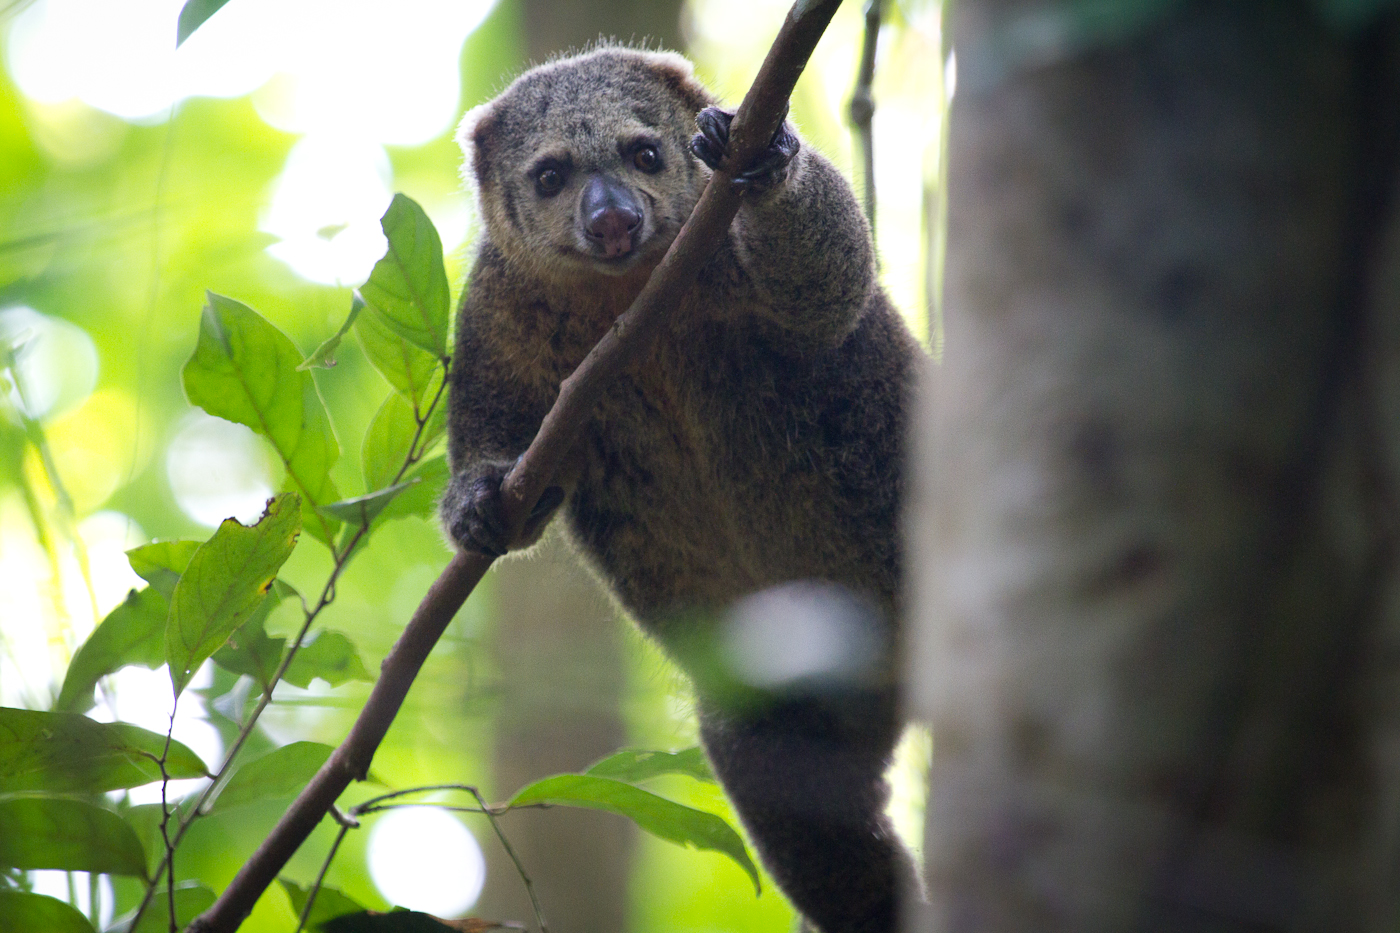 Sulawesi Bear Cuscus. A bizarre forest creature which is not a bear at all and actually has a long prehensile tail for holding on. More like a sloth if you ask me!